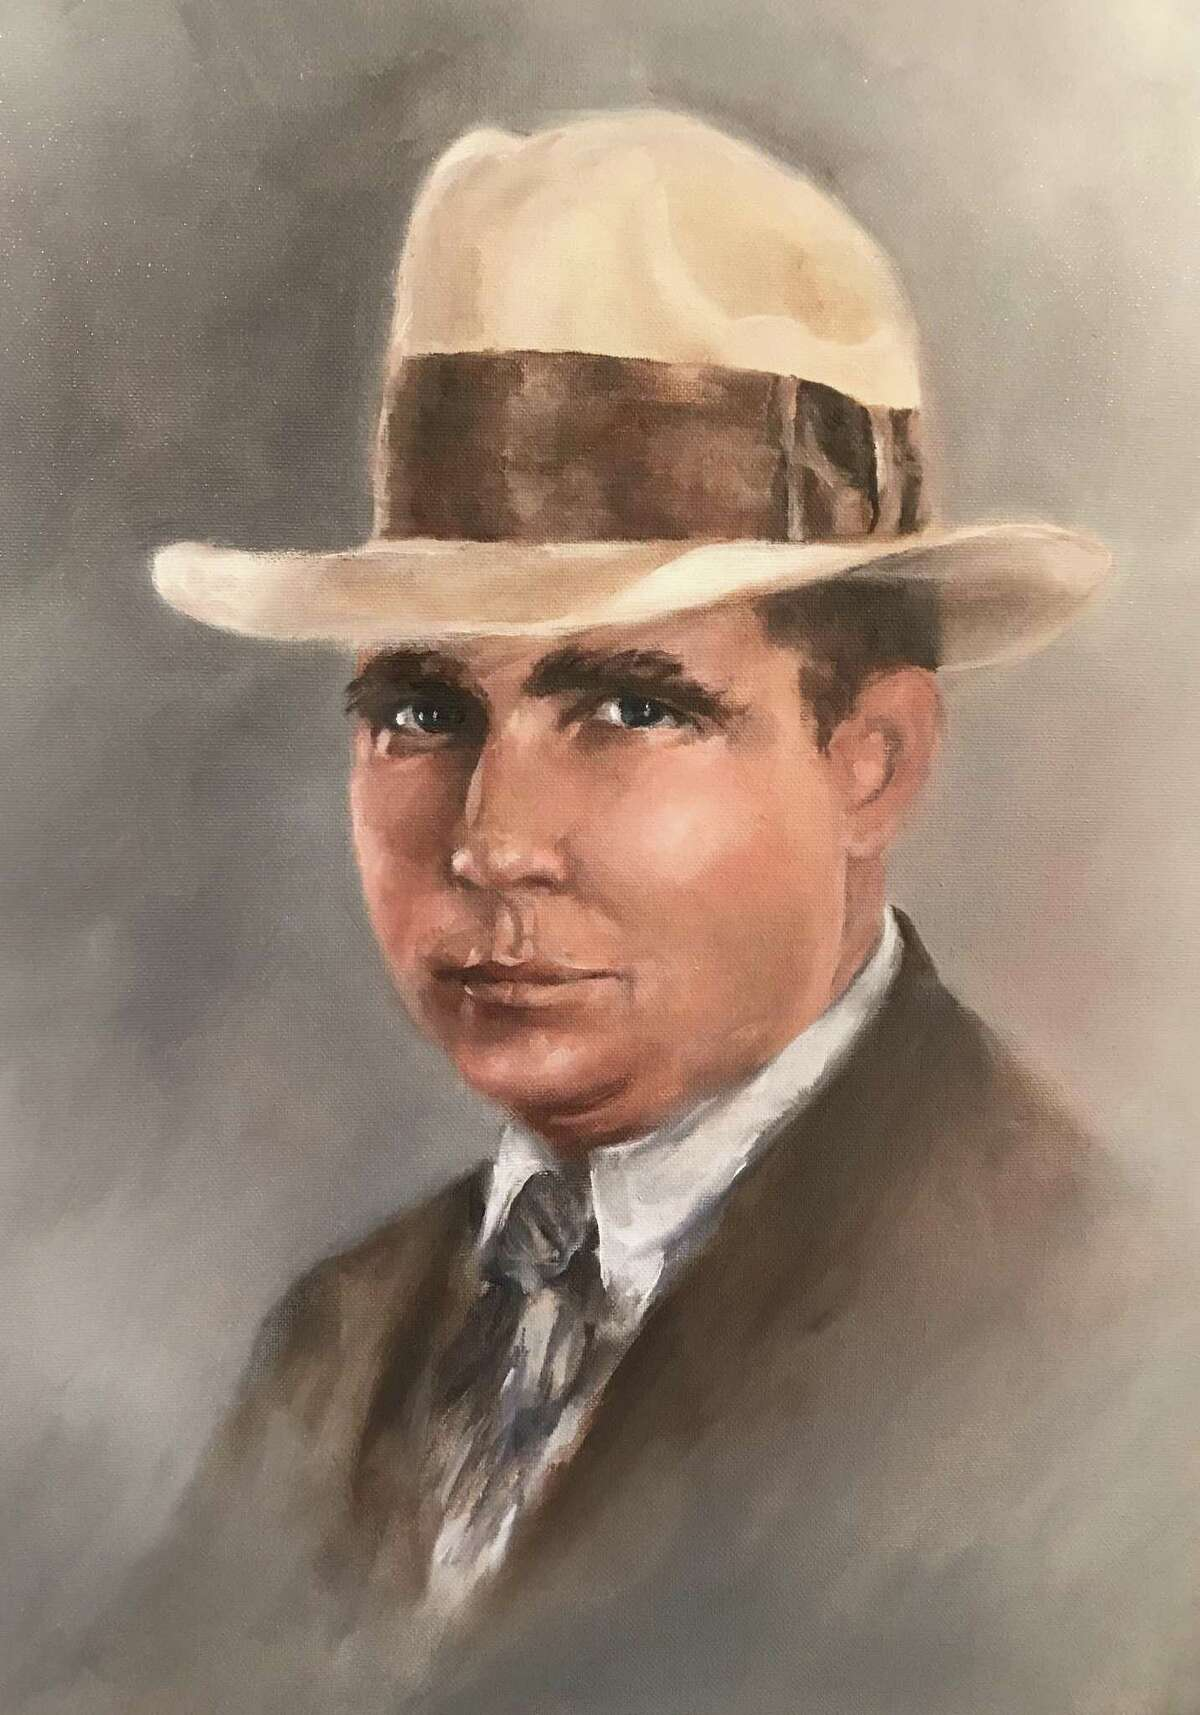 Robert Howard?'s meteoric writing career lasted only about a dozen years, until his death by suicide at age 30 in 1936.